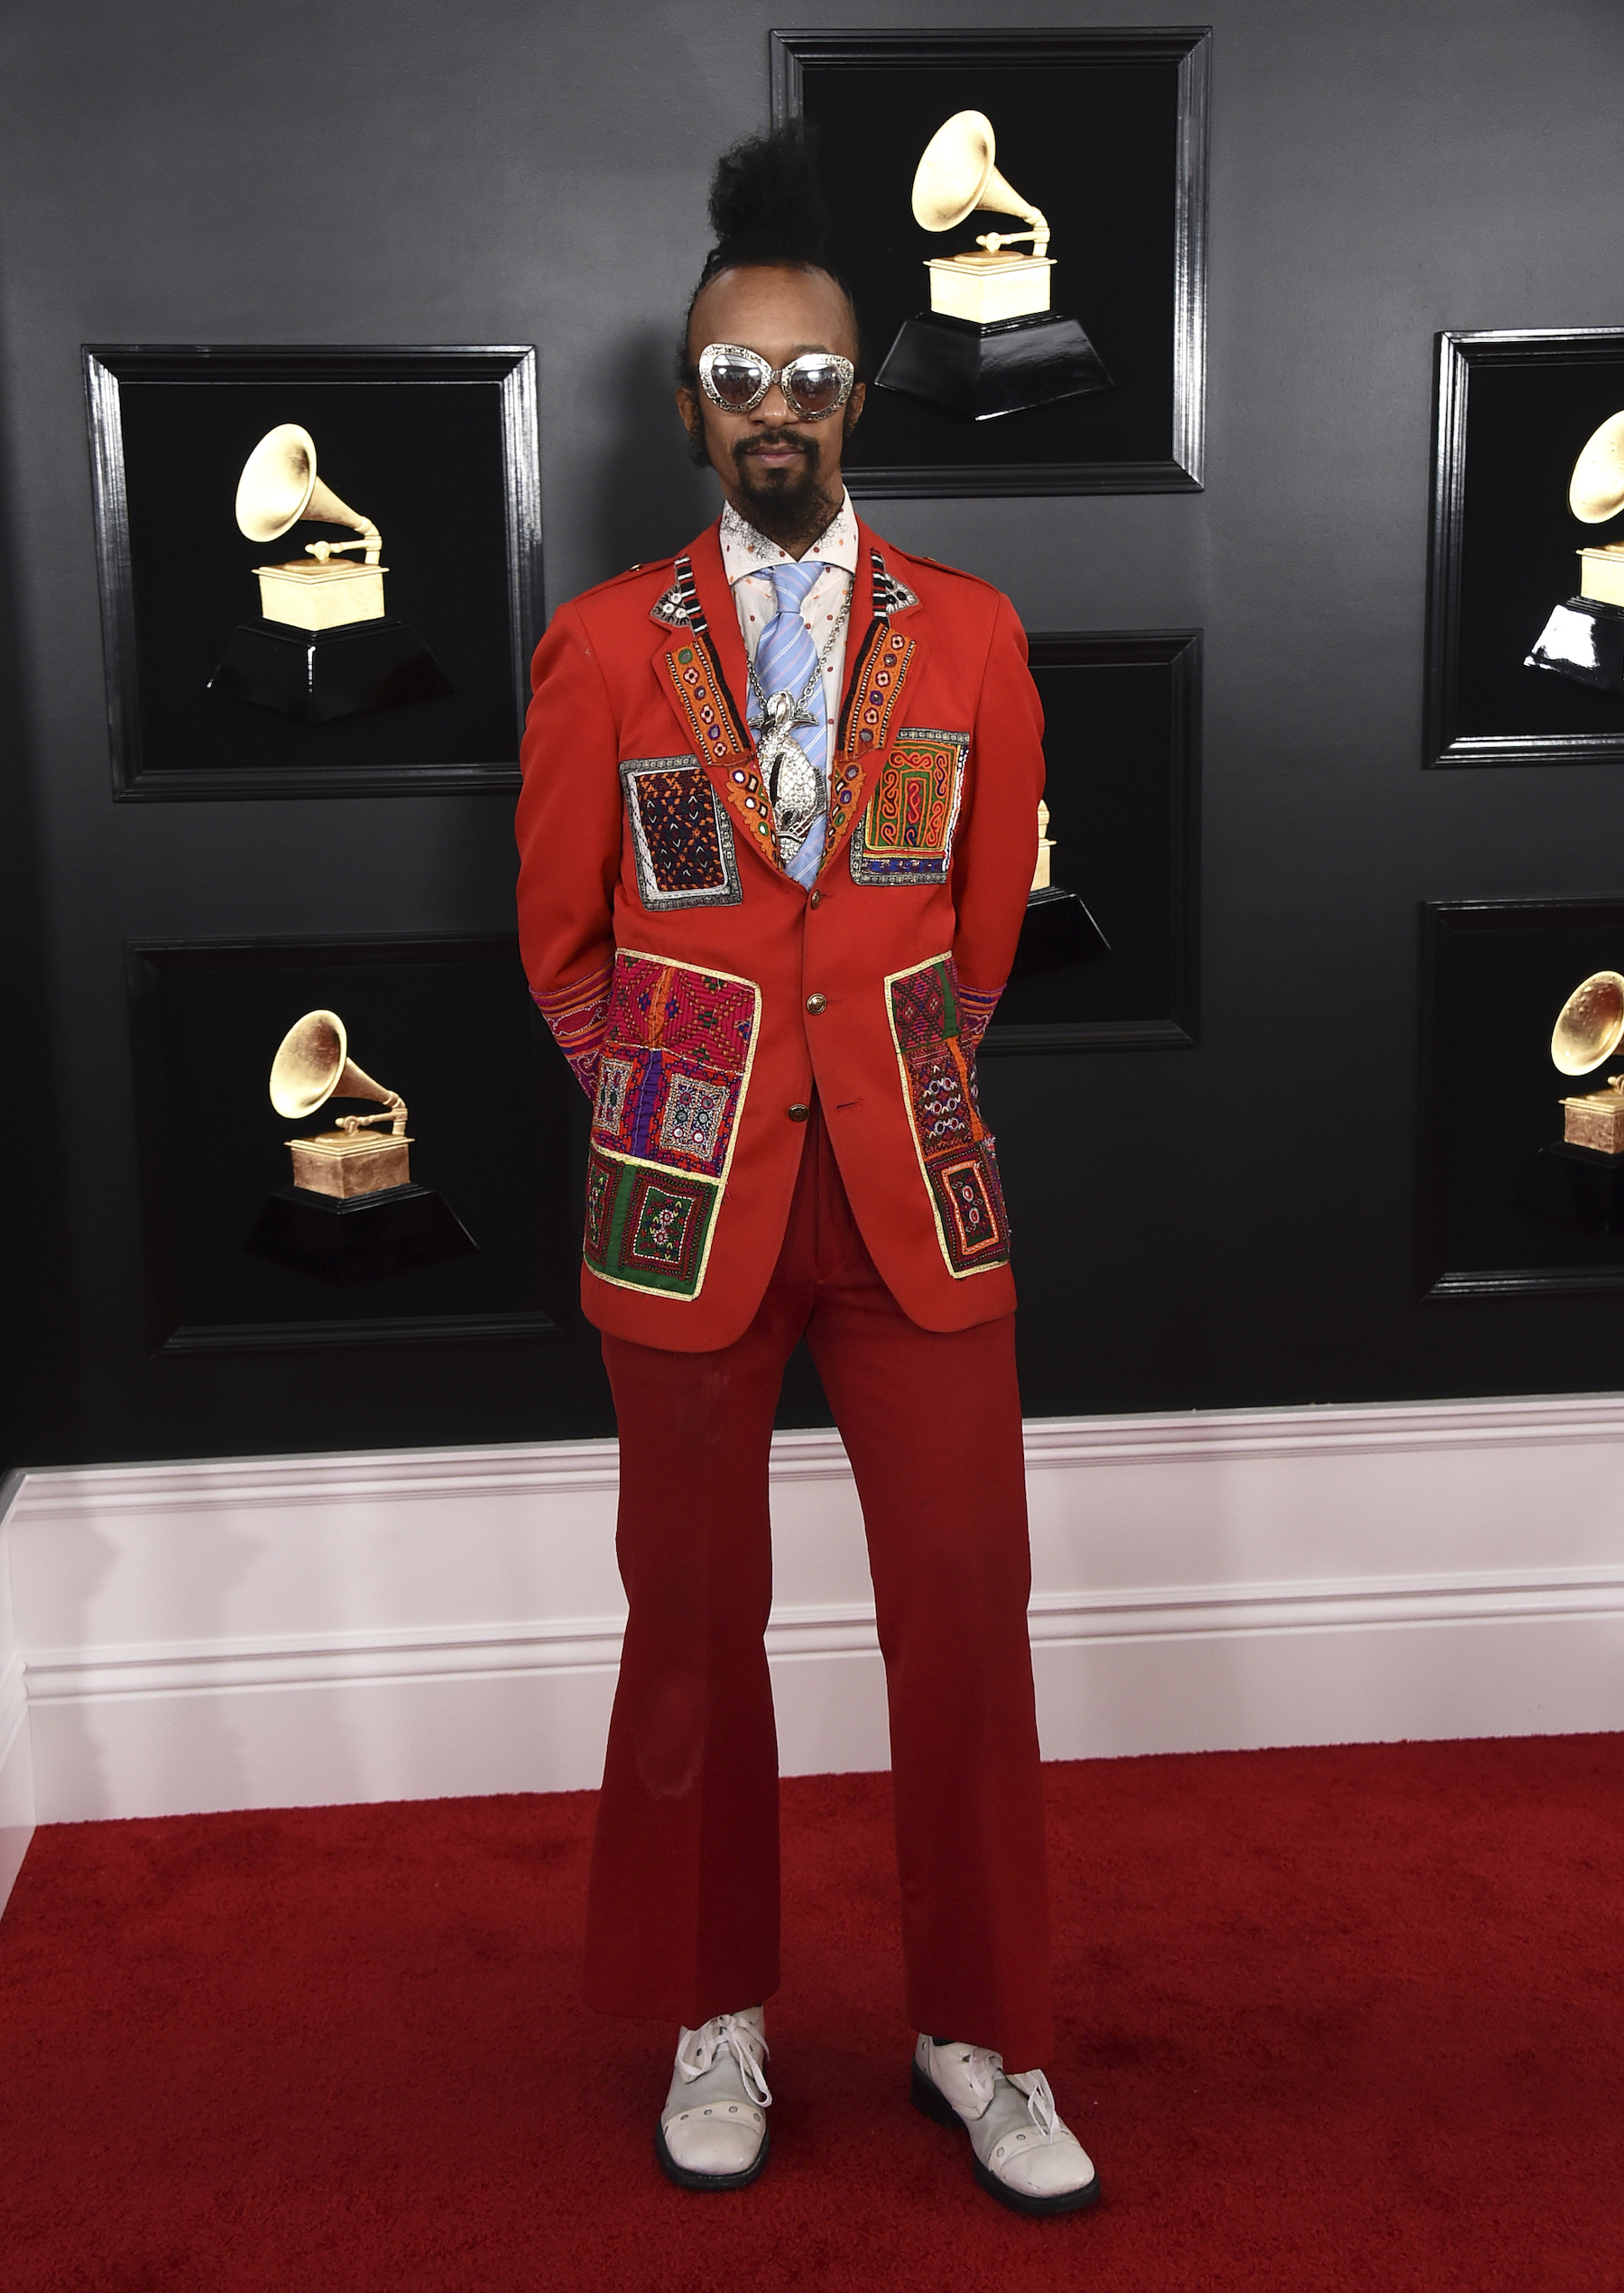 "<div class=""meta image-caption""><div class=""origin-logo origin-image ap""><span>AP</span></div><span class=""caption-text"">Fantastic Negrito arrives at the 61st annual Grammy Awards at the Staples Center on Sunday, Feb. 10, 2019, in Los Angeles. (Jordan Strauss/Invision/AP)</span></div>"